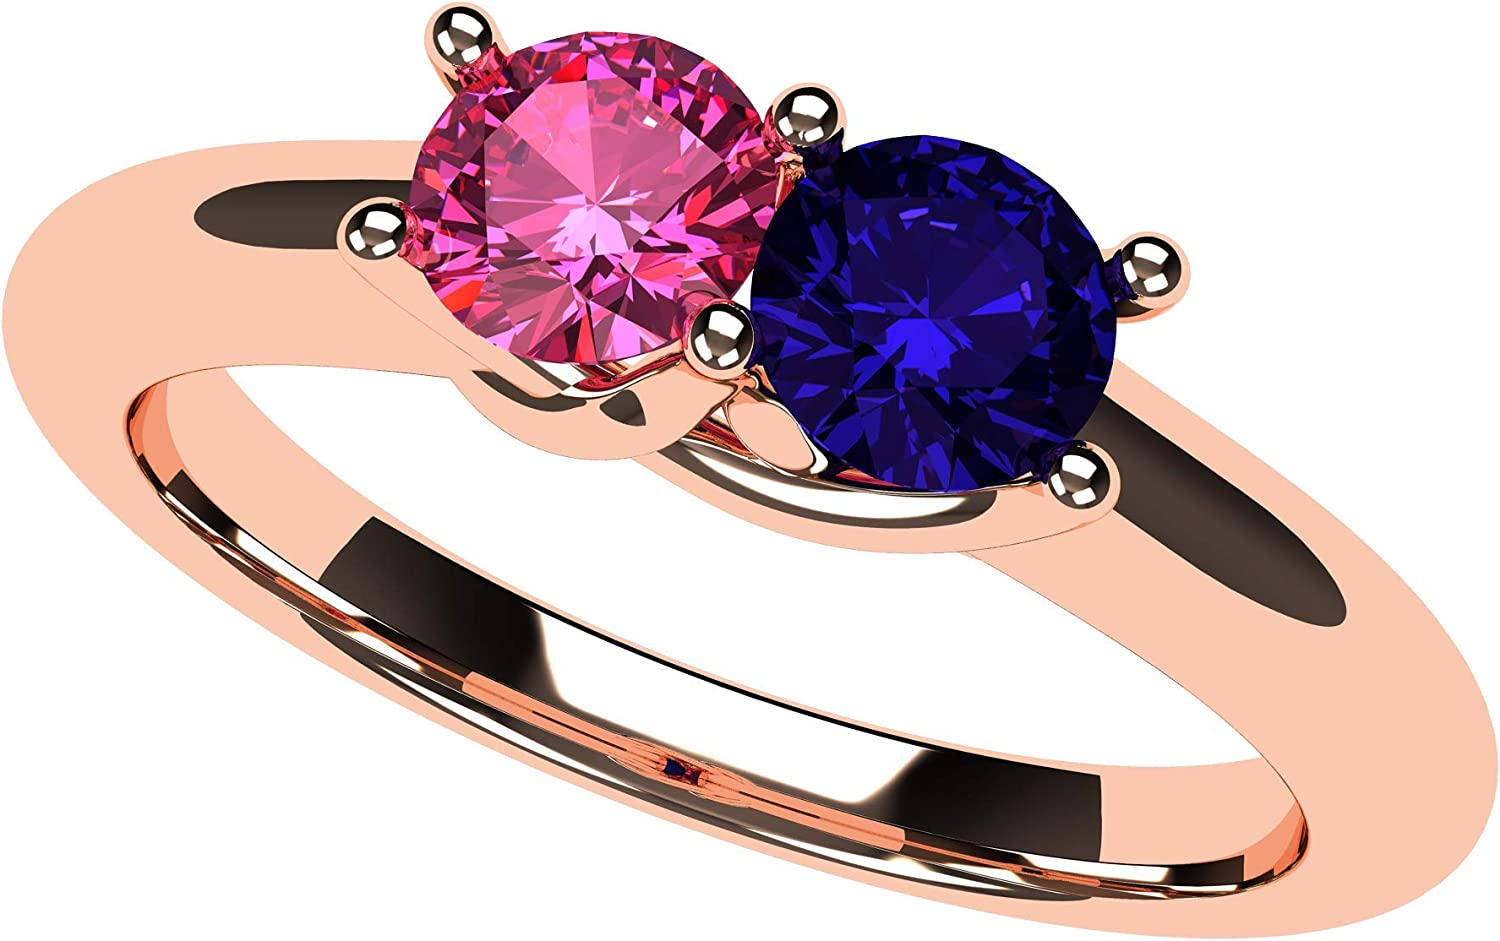 Lucita Couples Ring Los Angeles Mall w 2 Simulated Birthstones Ranking TOP7 14K White in Yel